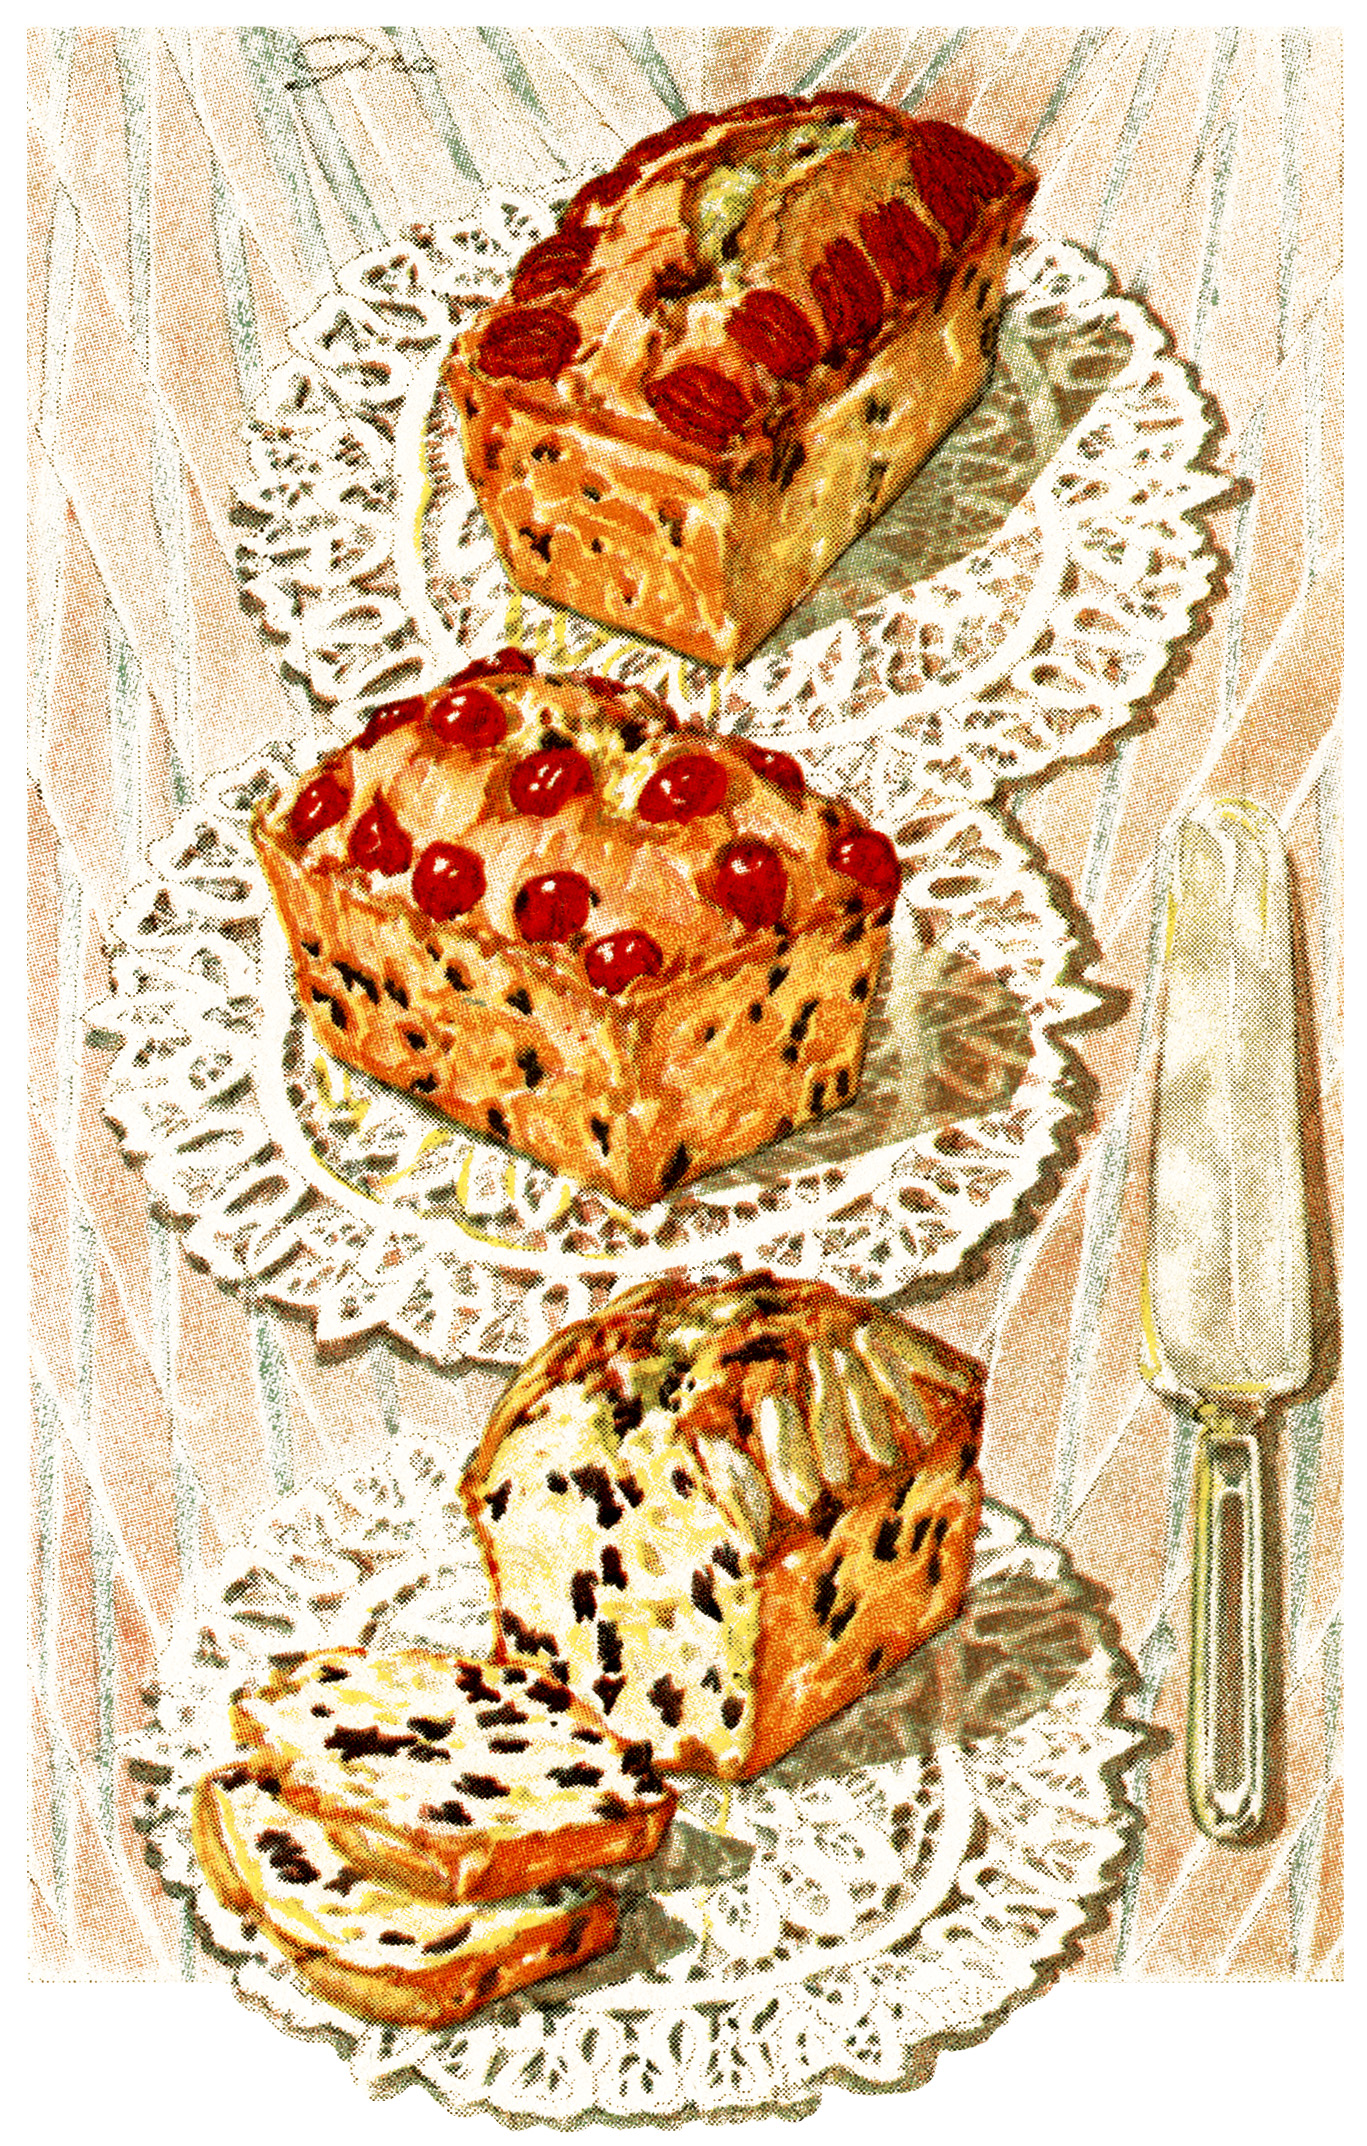 Dundee Cake Clip Art : OldDesignShop_EnglishDundeeCake3 Old Design Shop Blog